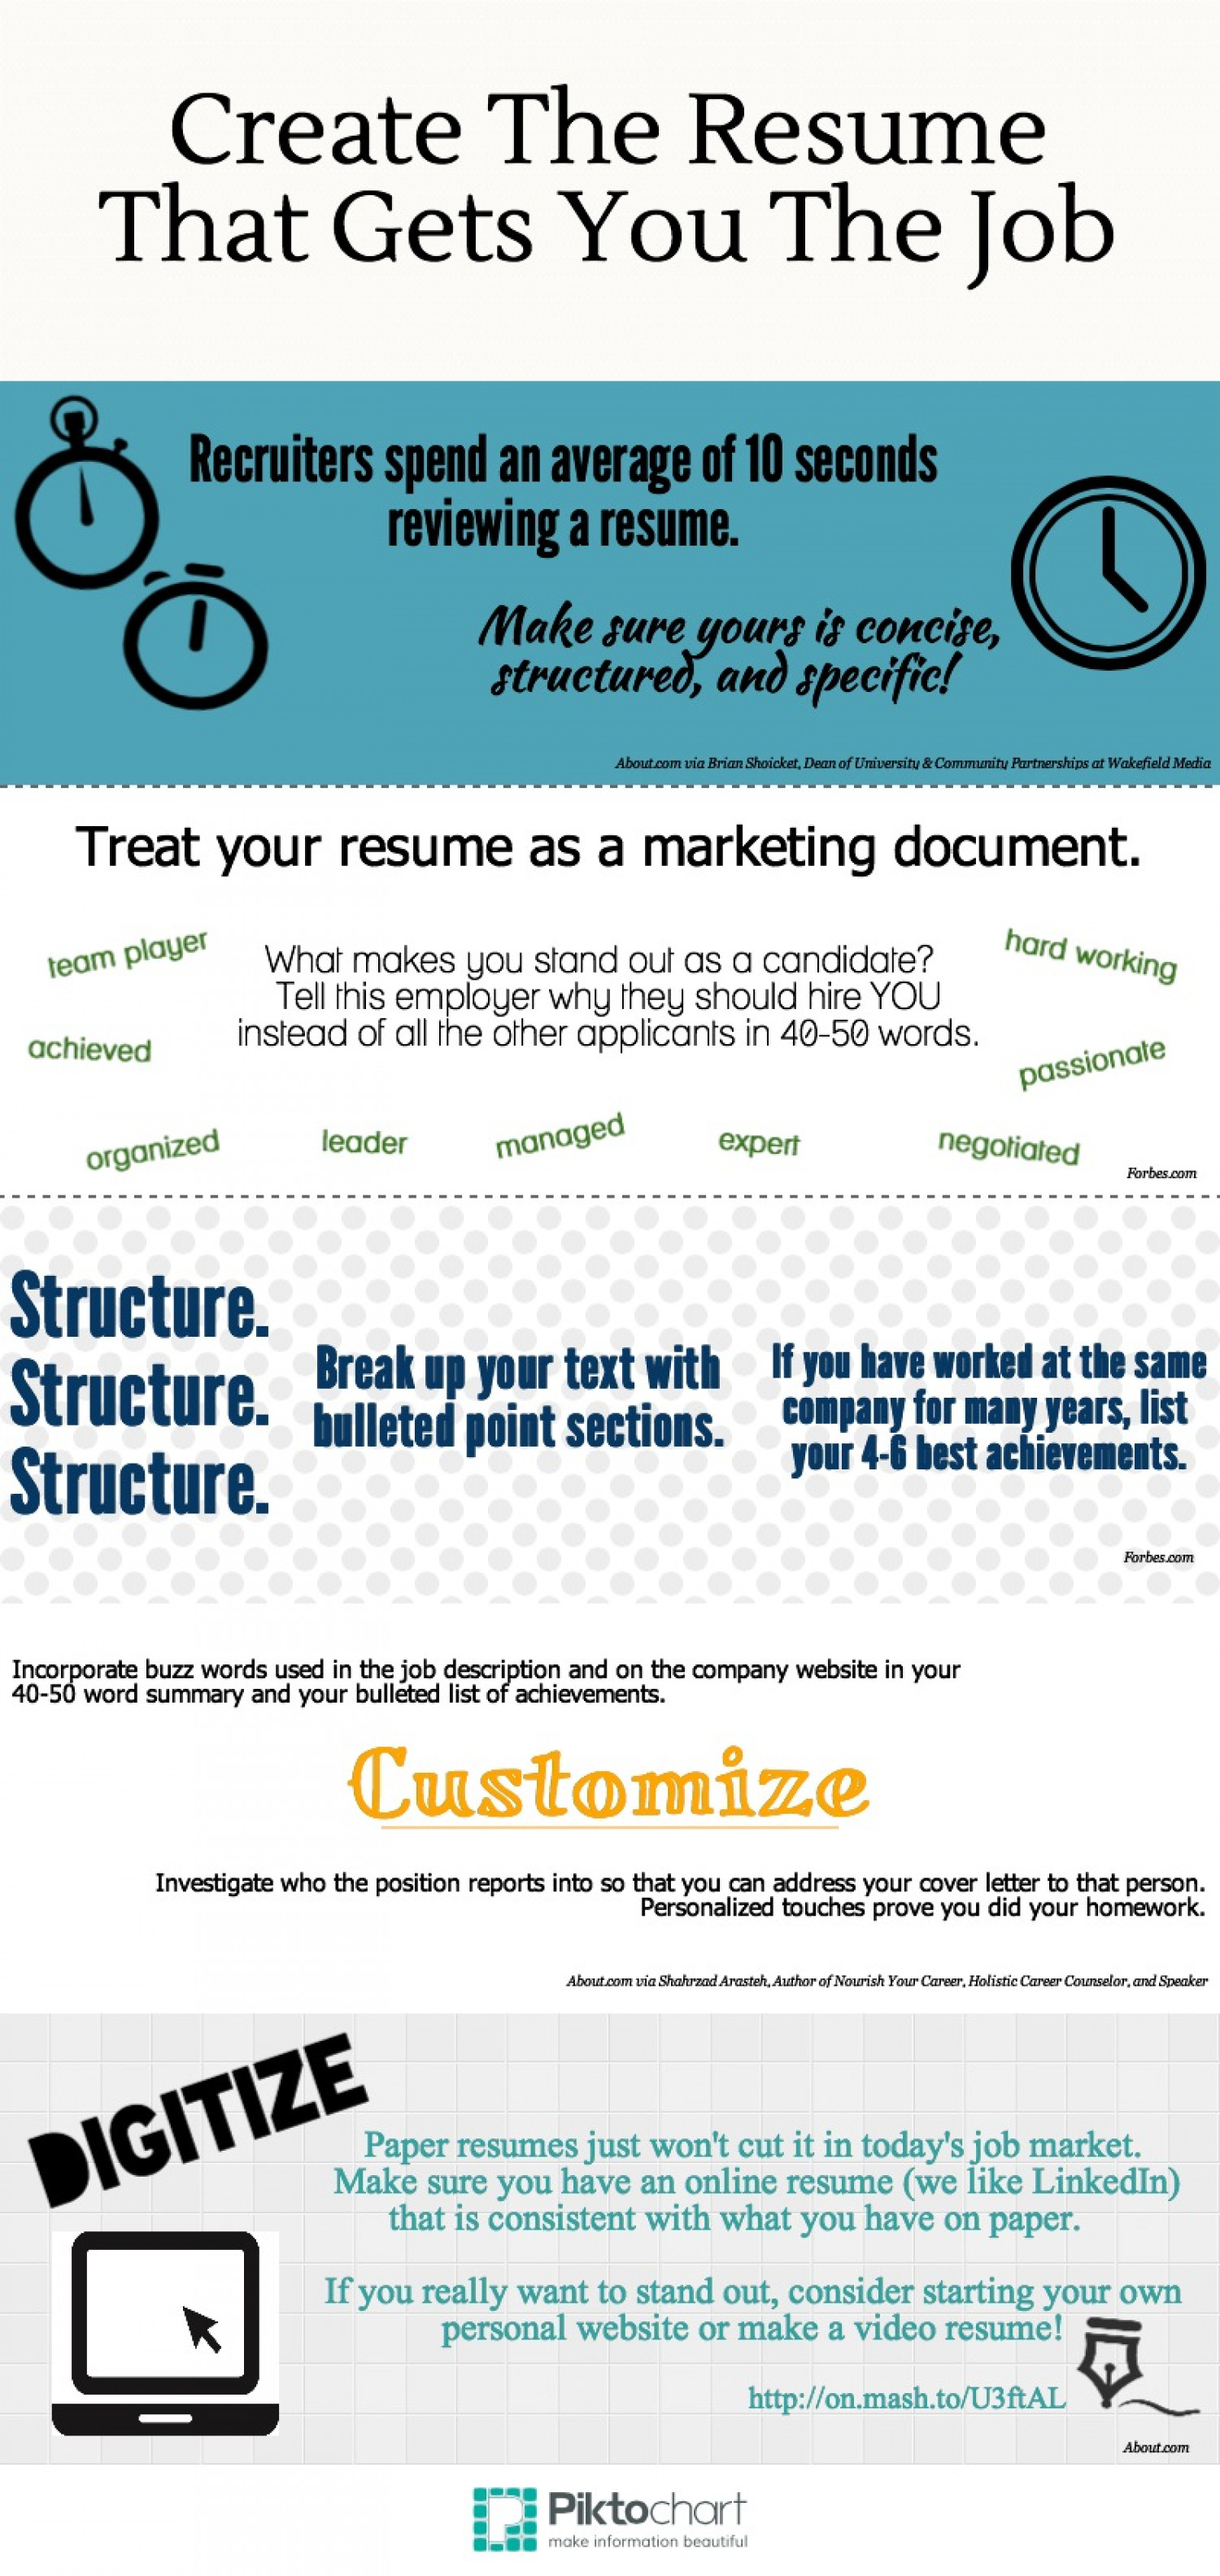 How To Make Your Resume Stand Out | Visual.ly